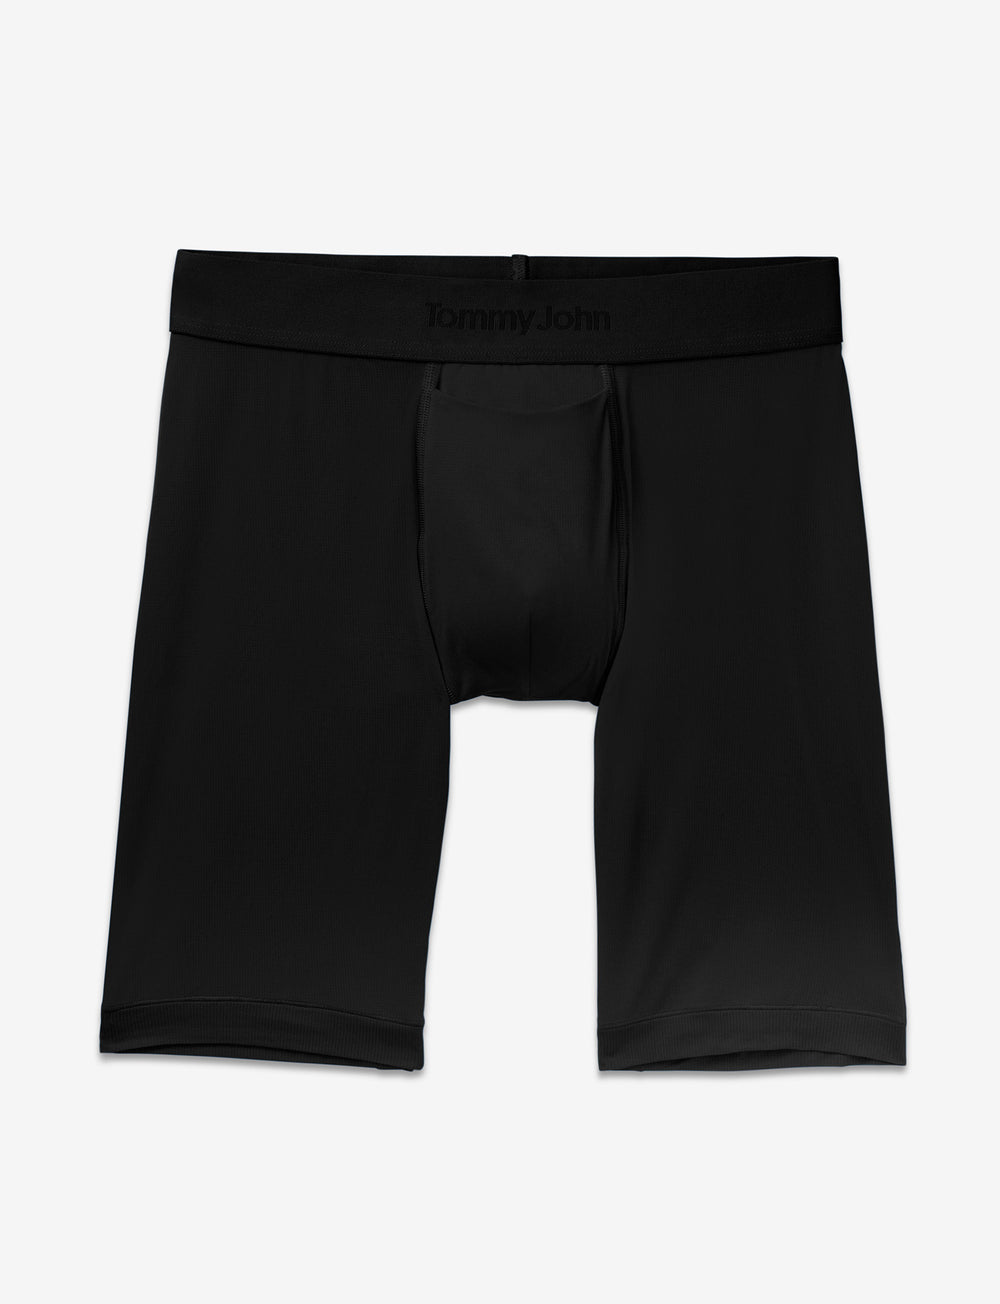 Air Boxer Brief Details Image